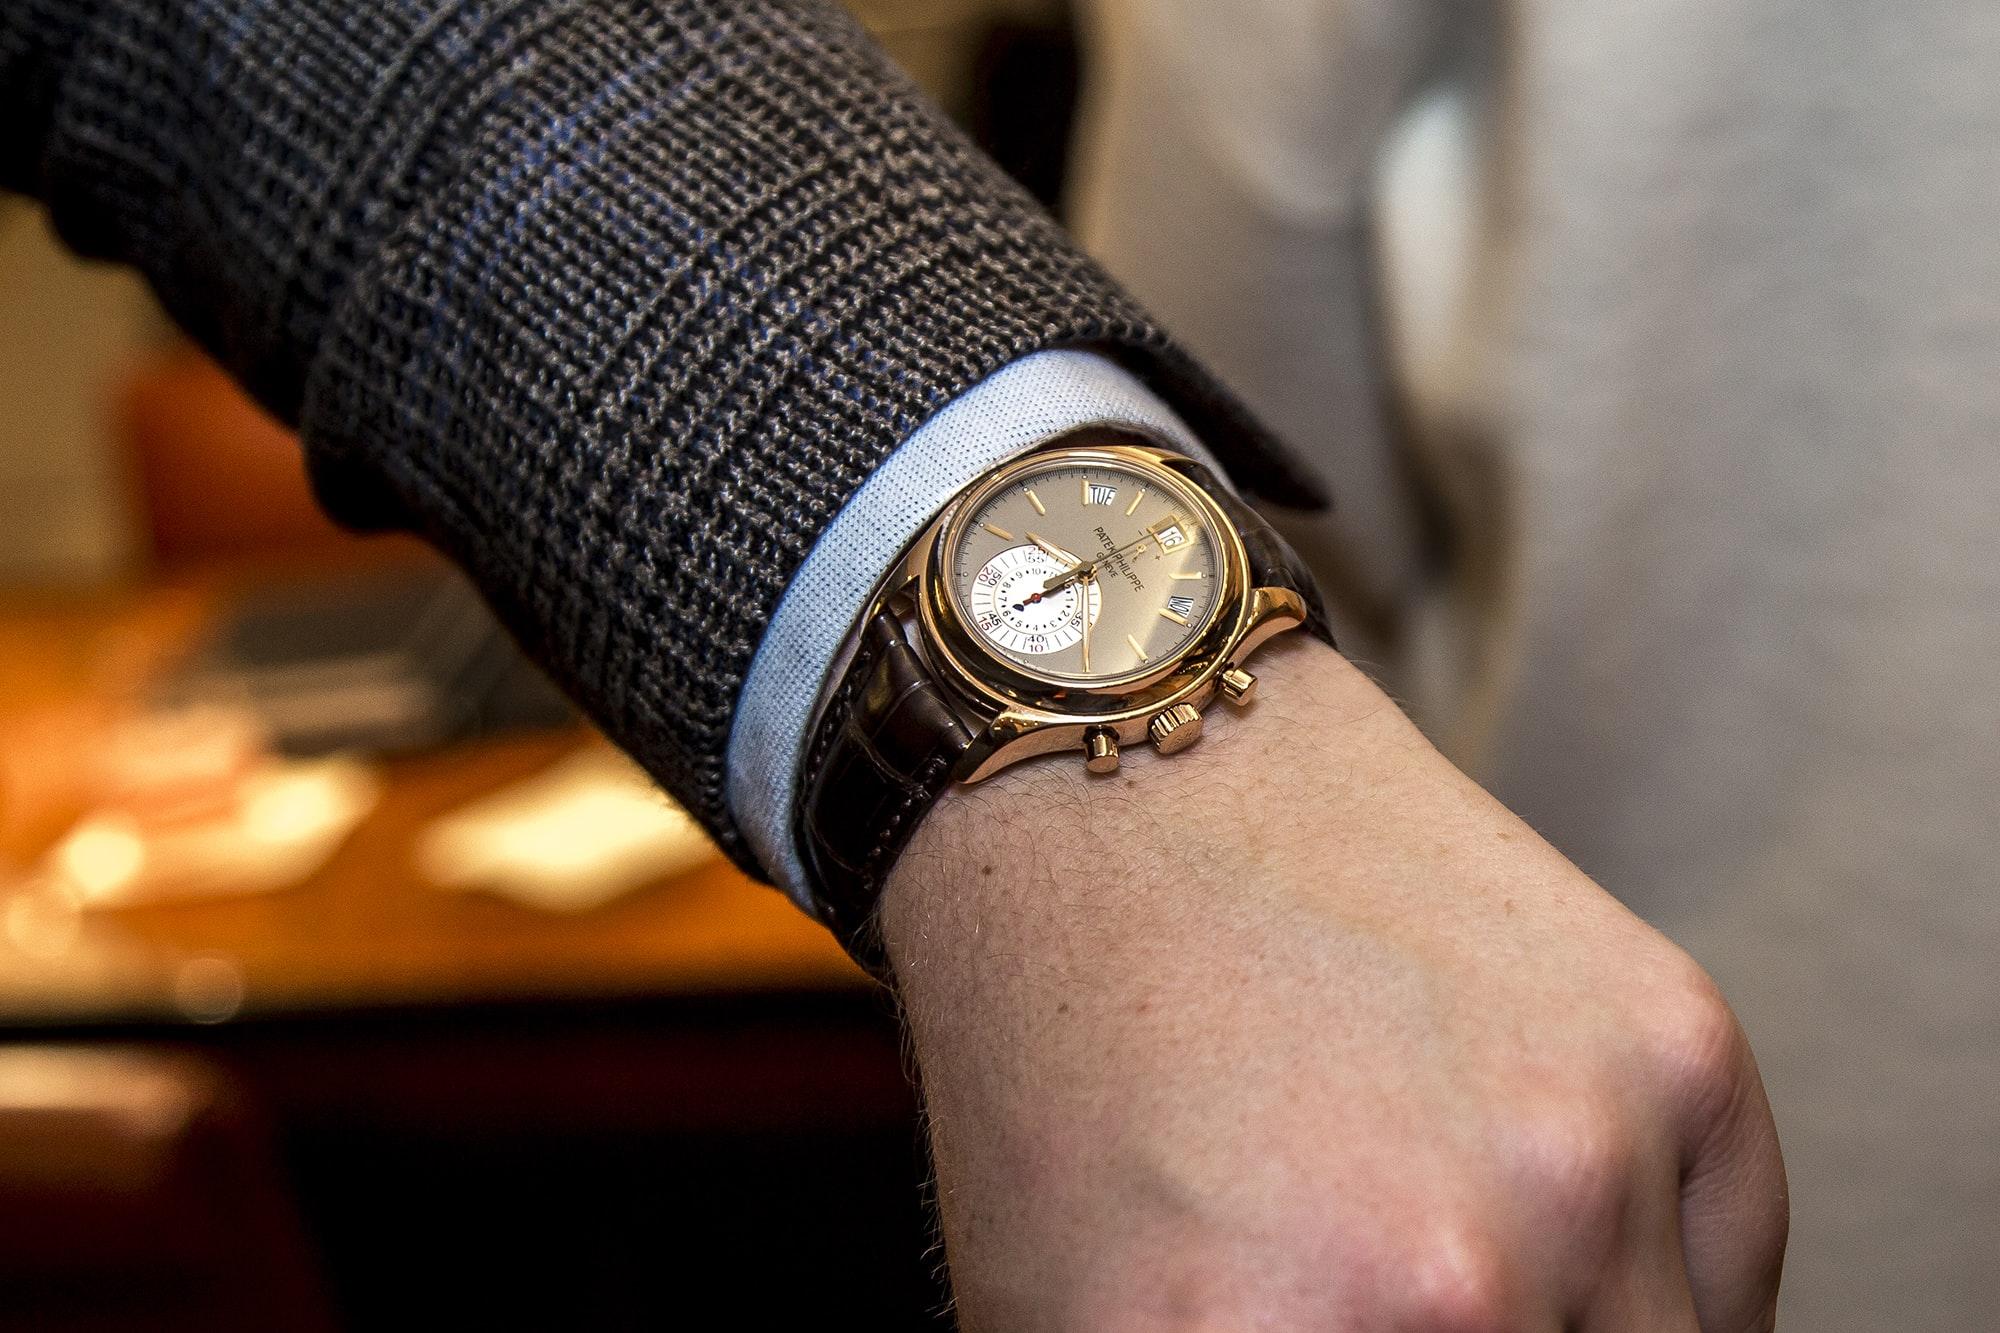 Photo Report: HODINKEE Hosts A Collector Get-Together At The Wempe Boutique In London Photo Report: HODINKEE Hosts A Collector Get-Together At The Wempe Boutique In London 9